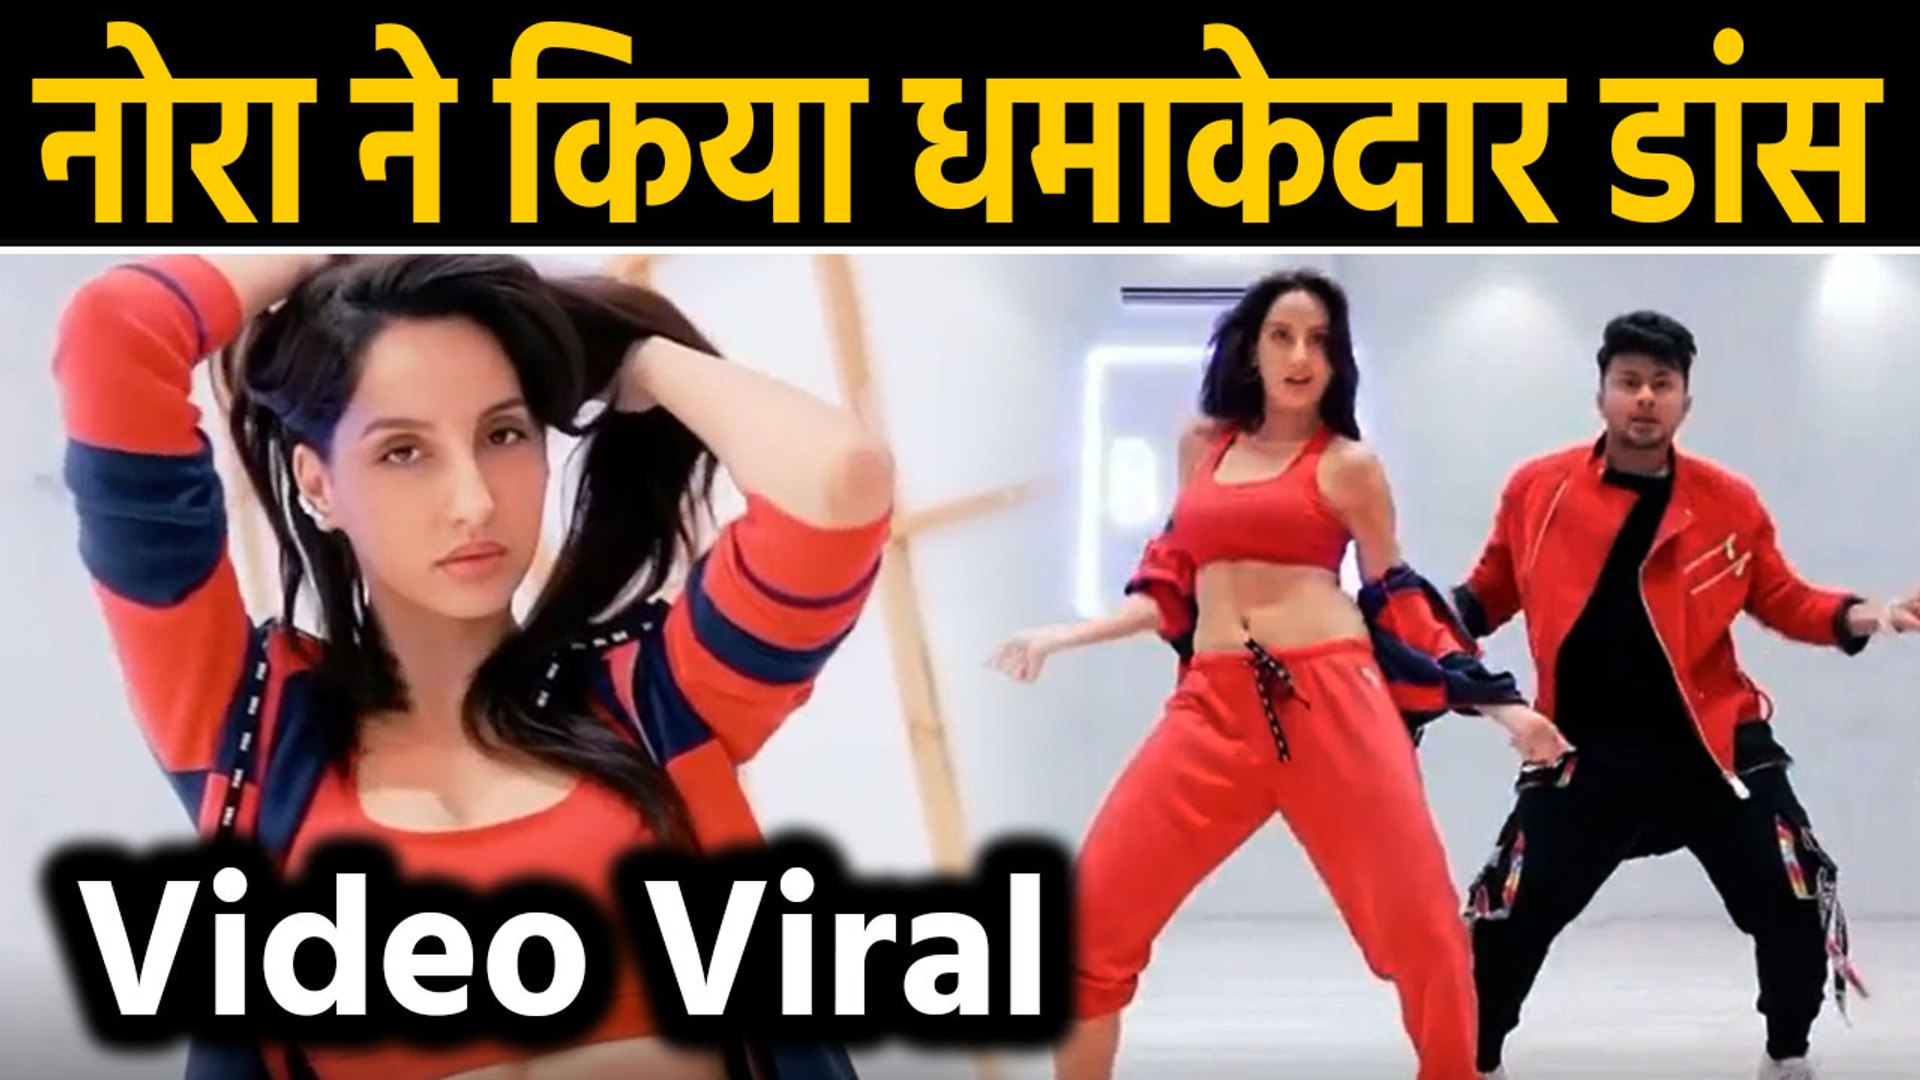 Nora Fatehi hilarious dance video goes viral on social media | वनइंडिया हिंदी